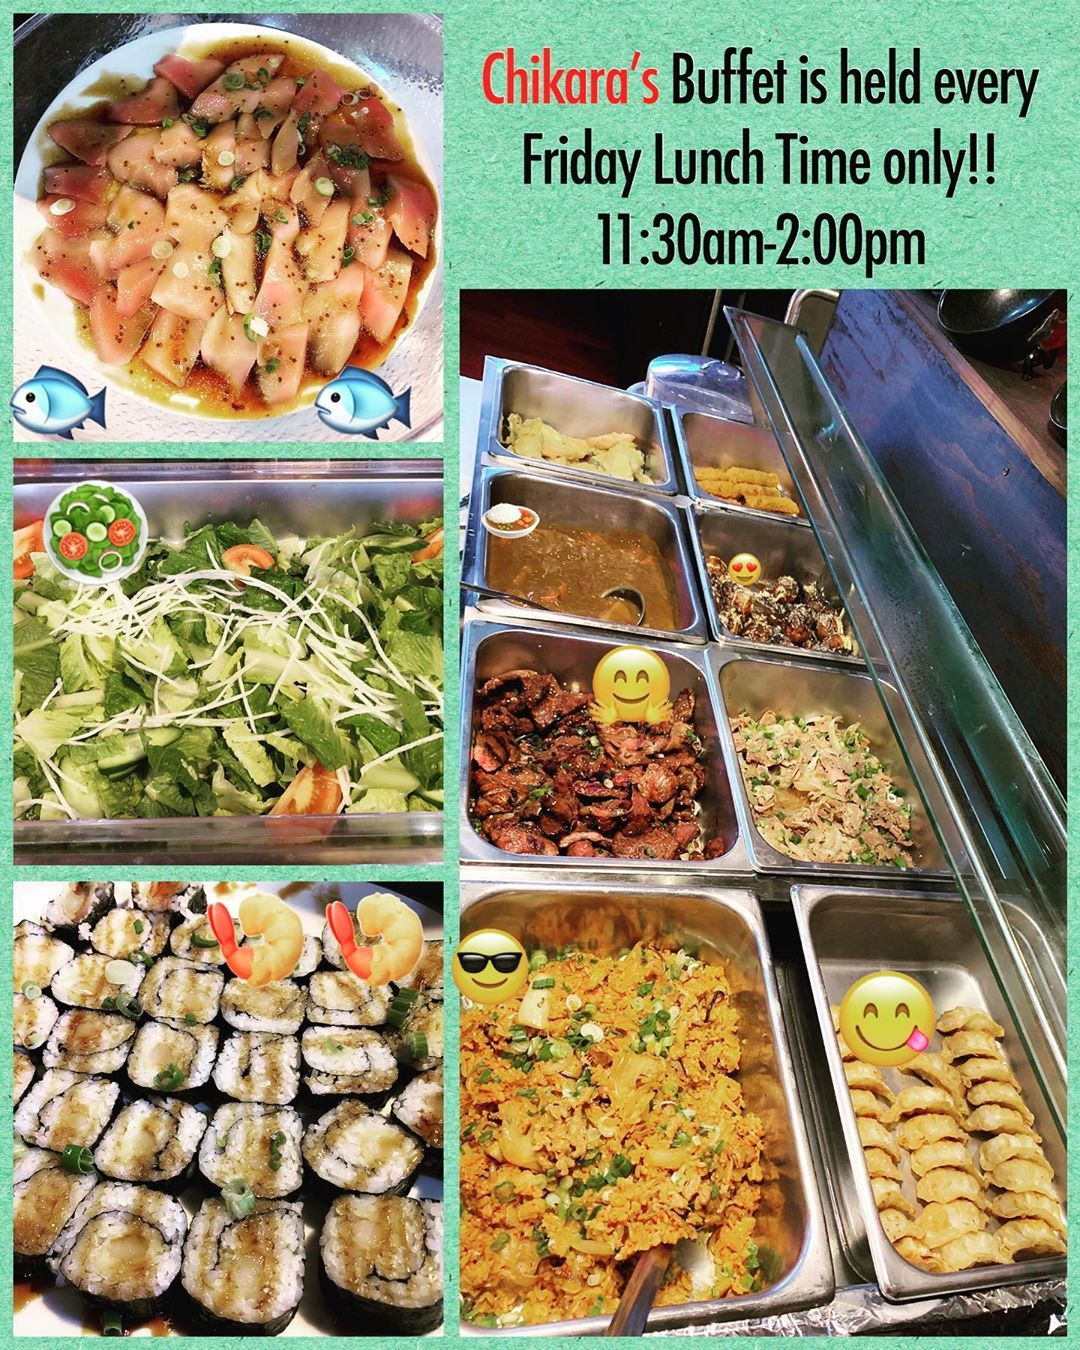 We Have Lunch Buffet Every Friday For Only 14 99 We Re Open 11 30am 2 00pm Stop By With Your Friends And Families Because Thi Lunch Buffet Lunch Ginger Pork